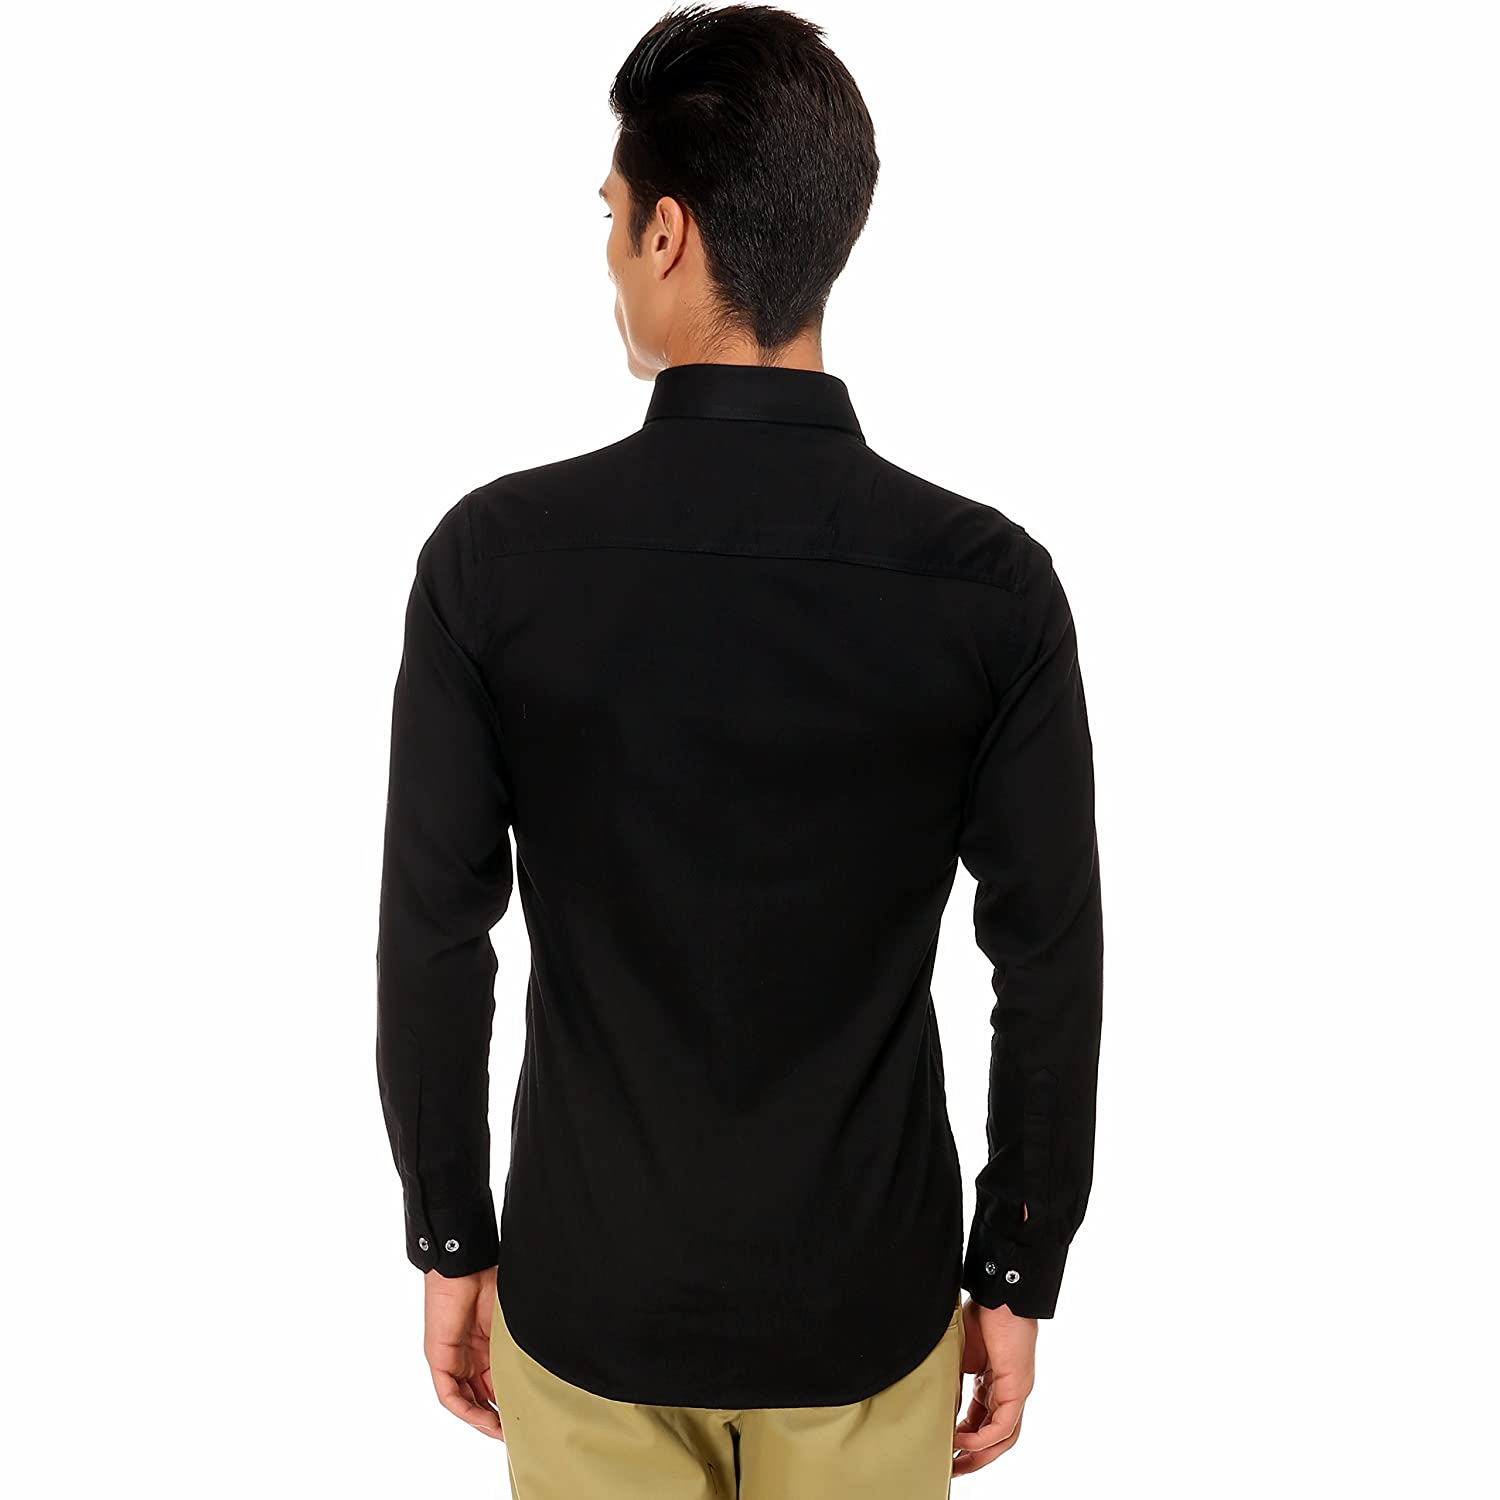 f3081e141089 Variksh Black Colored Cotton Casual Self Design Shirt For Men s  Amazon.in   Clothing   Accessories